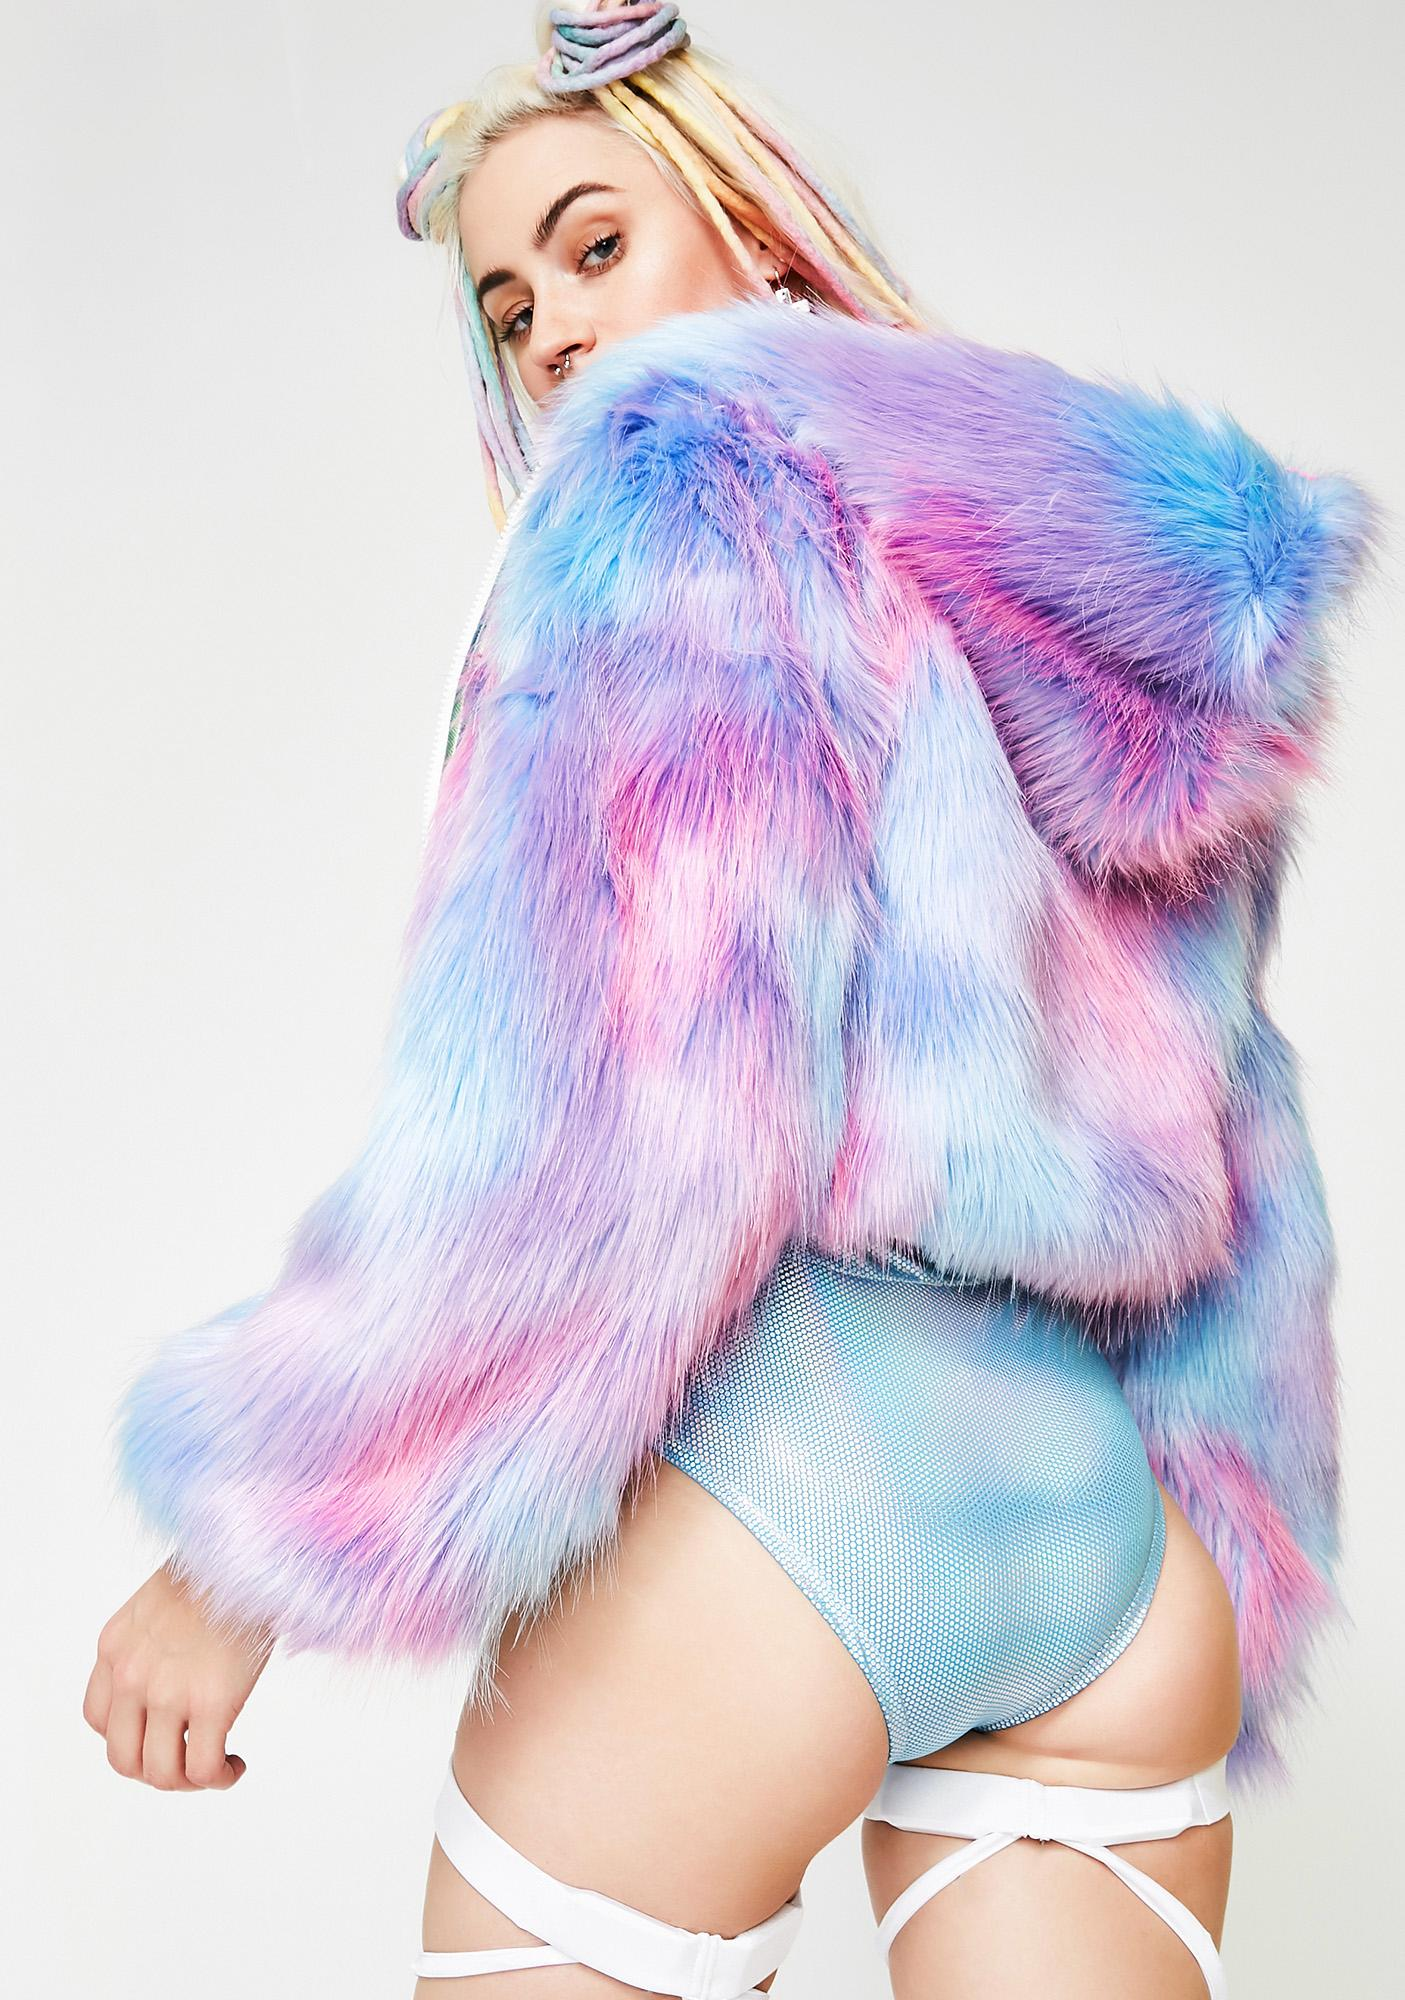 J Valentine Cotton Candy Faux-Fur Cropped Jacket